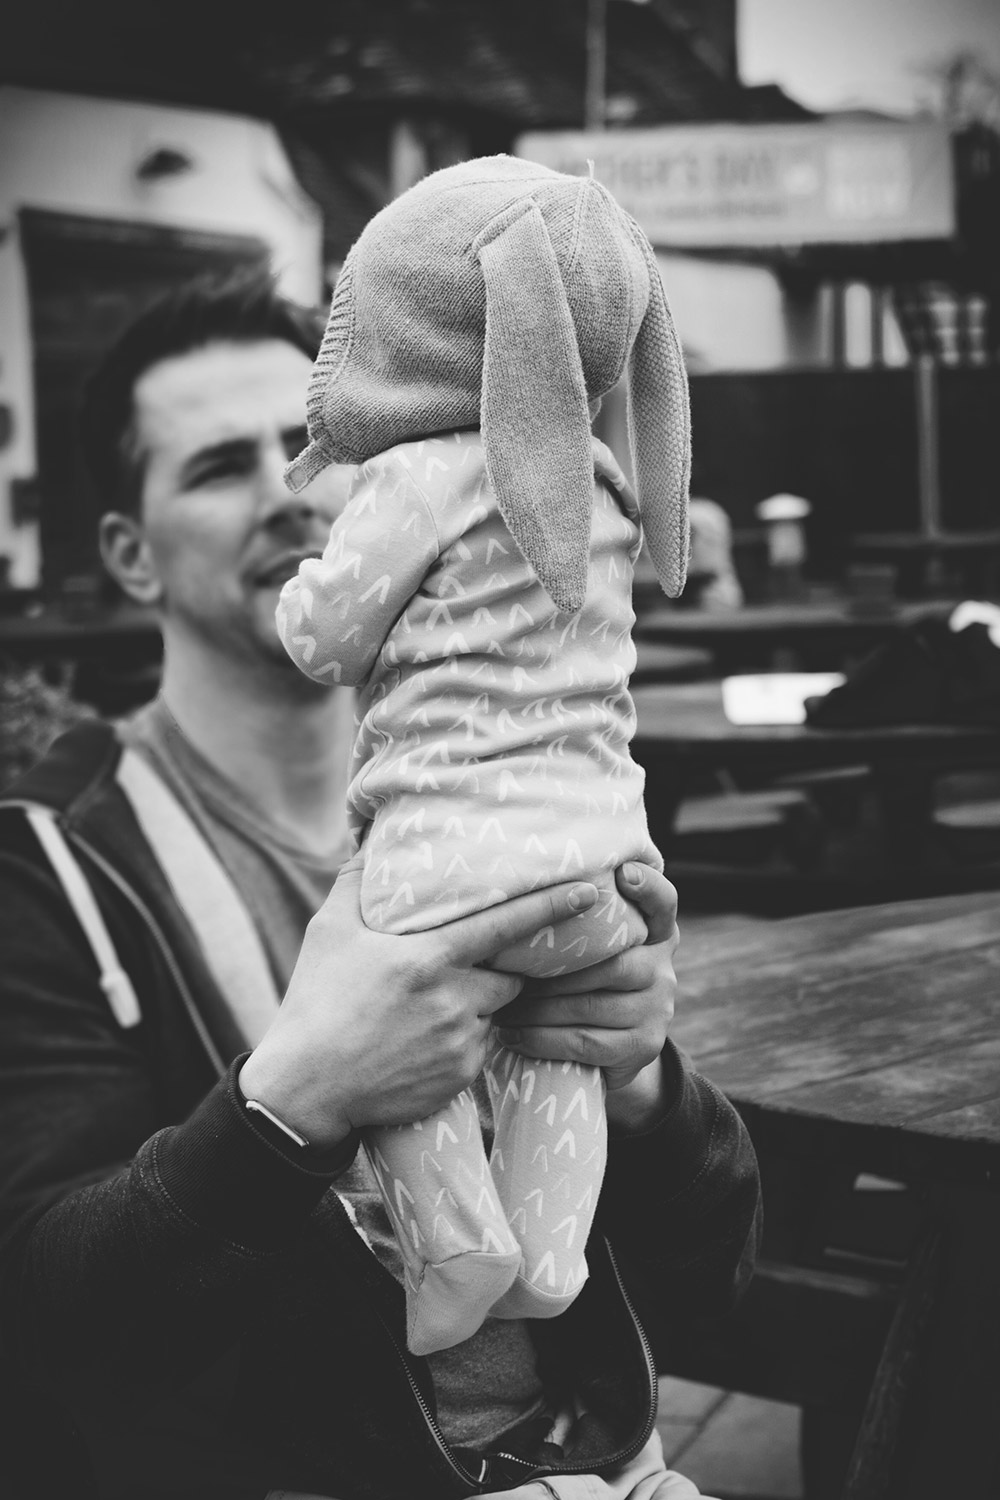 Father and 7 month old baby boy at the tearooms in Stratford-upon-Avon on a day out with family